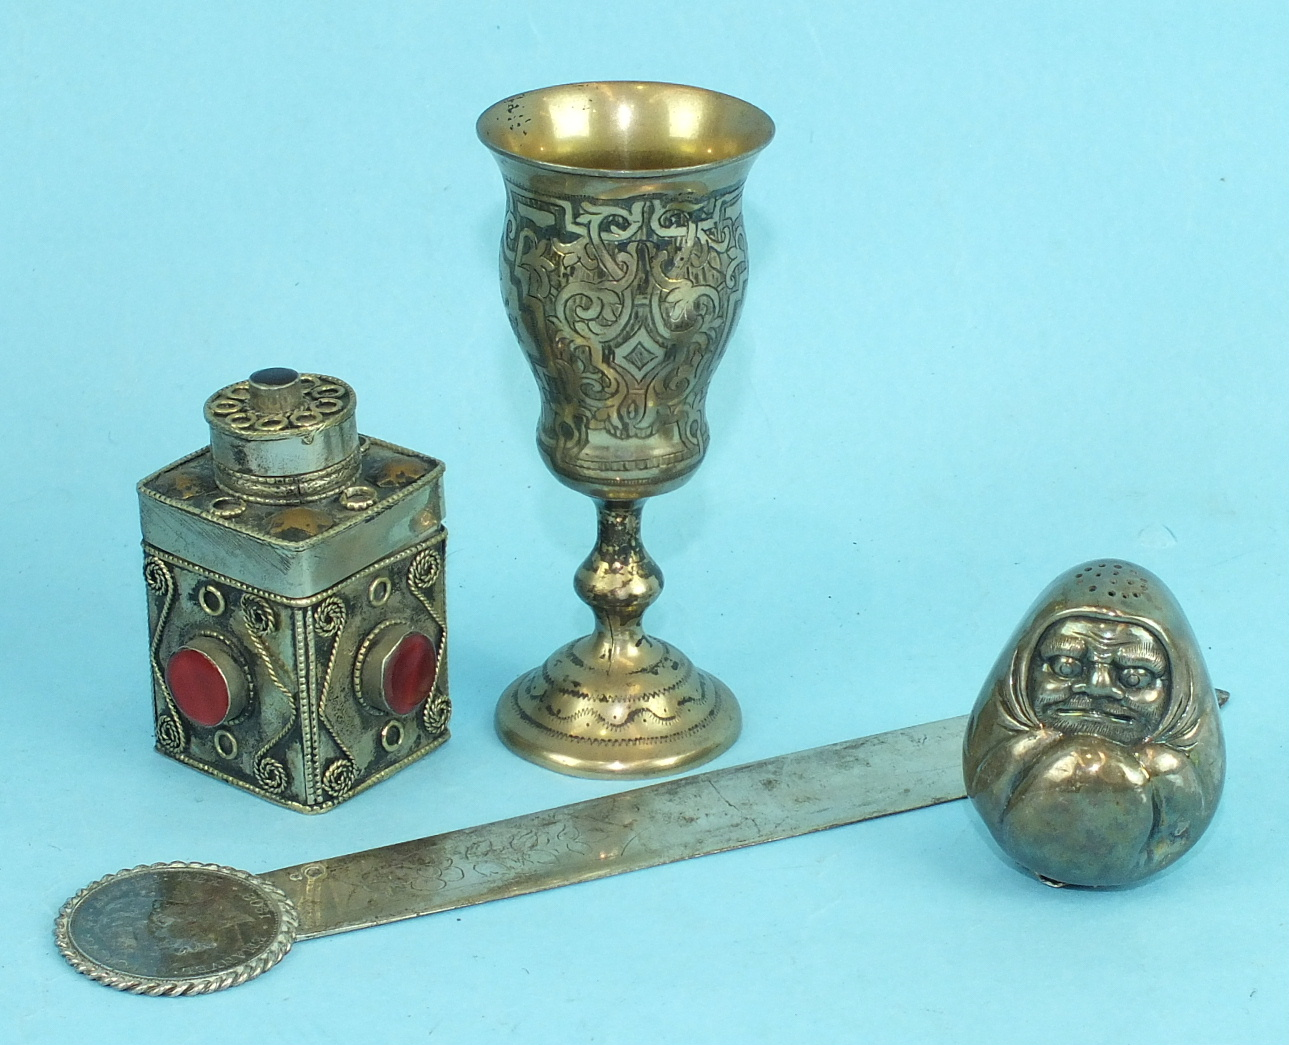 Lot 396 - A Russian silver gilt spirit cup with overall engraved decoration, 10cm high, a white metal letter